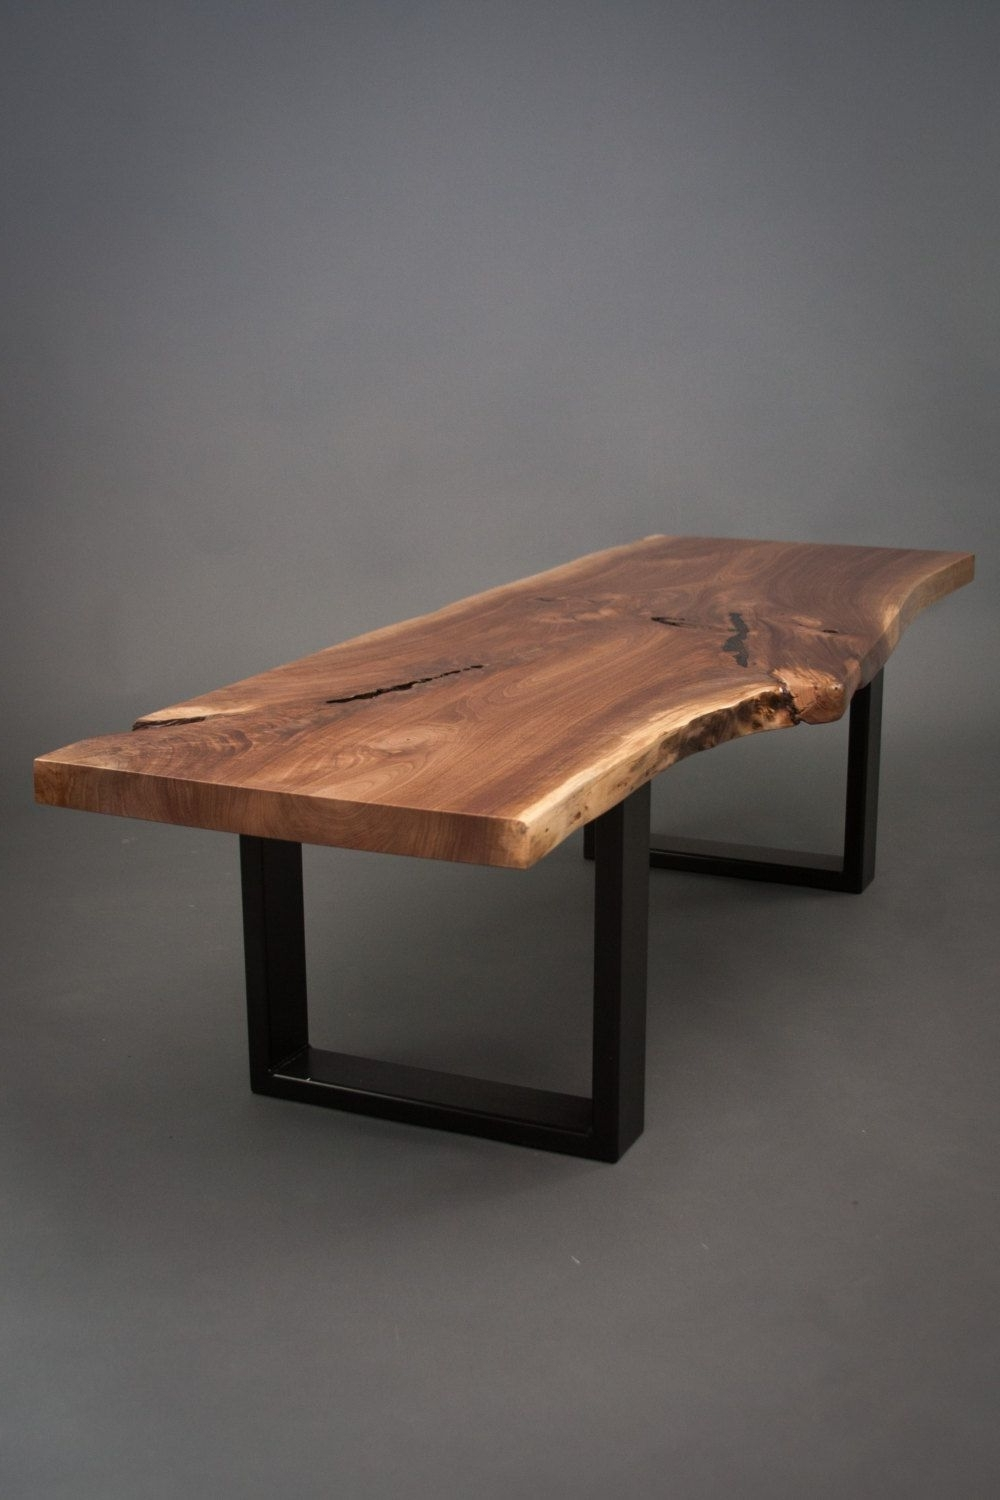 Fashionable Live Edge Teak Coffee Tables With Regard To Your Custom Black Walnut Coffee Table Size Medium – Live Edge – Slab (View 5 of 20)